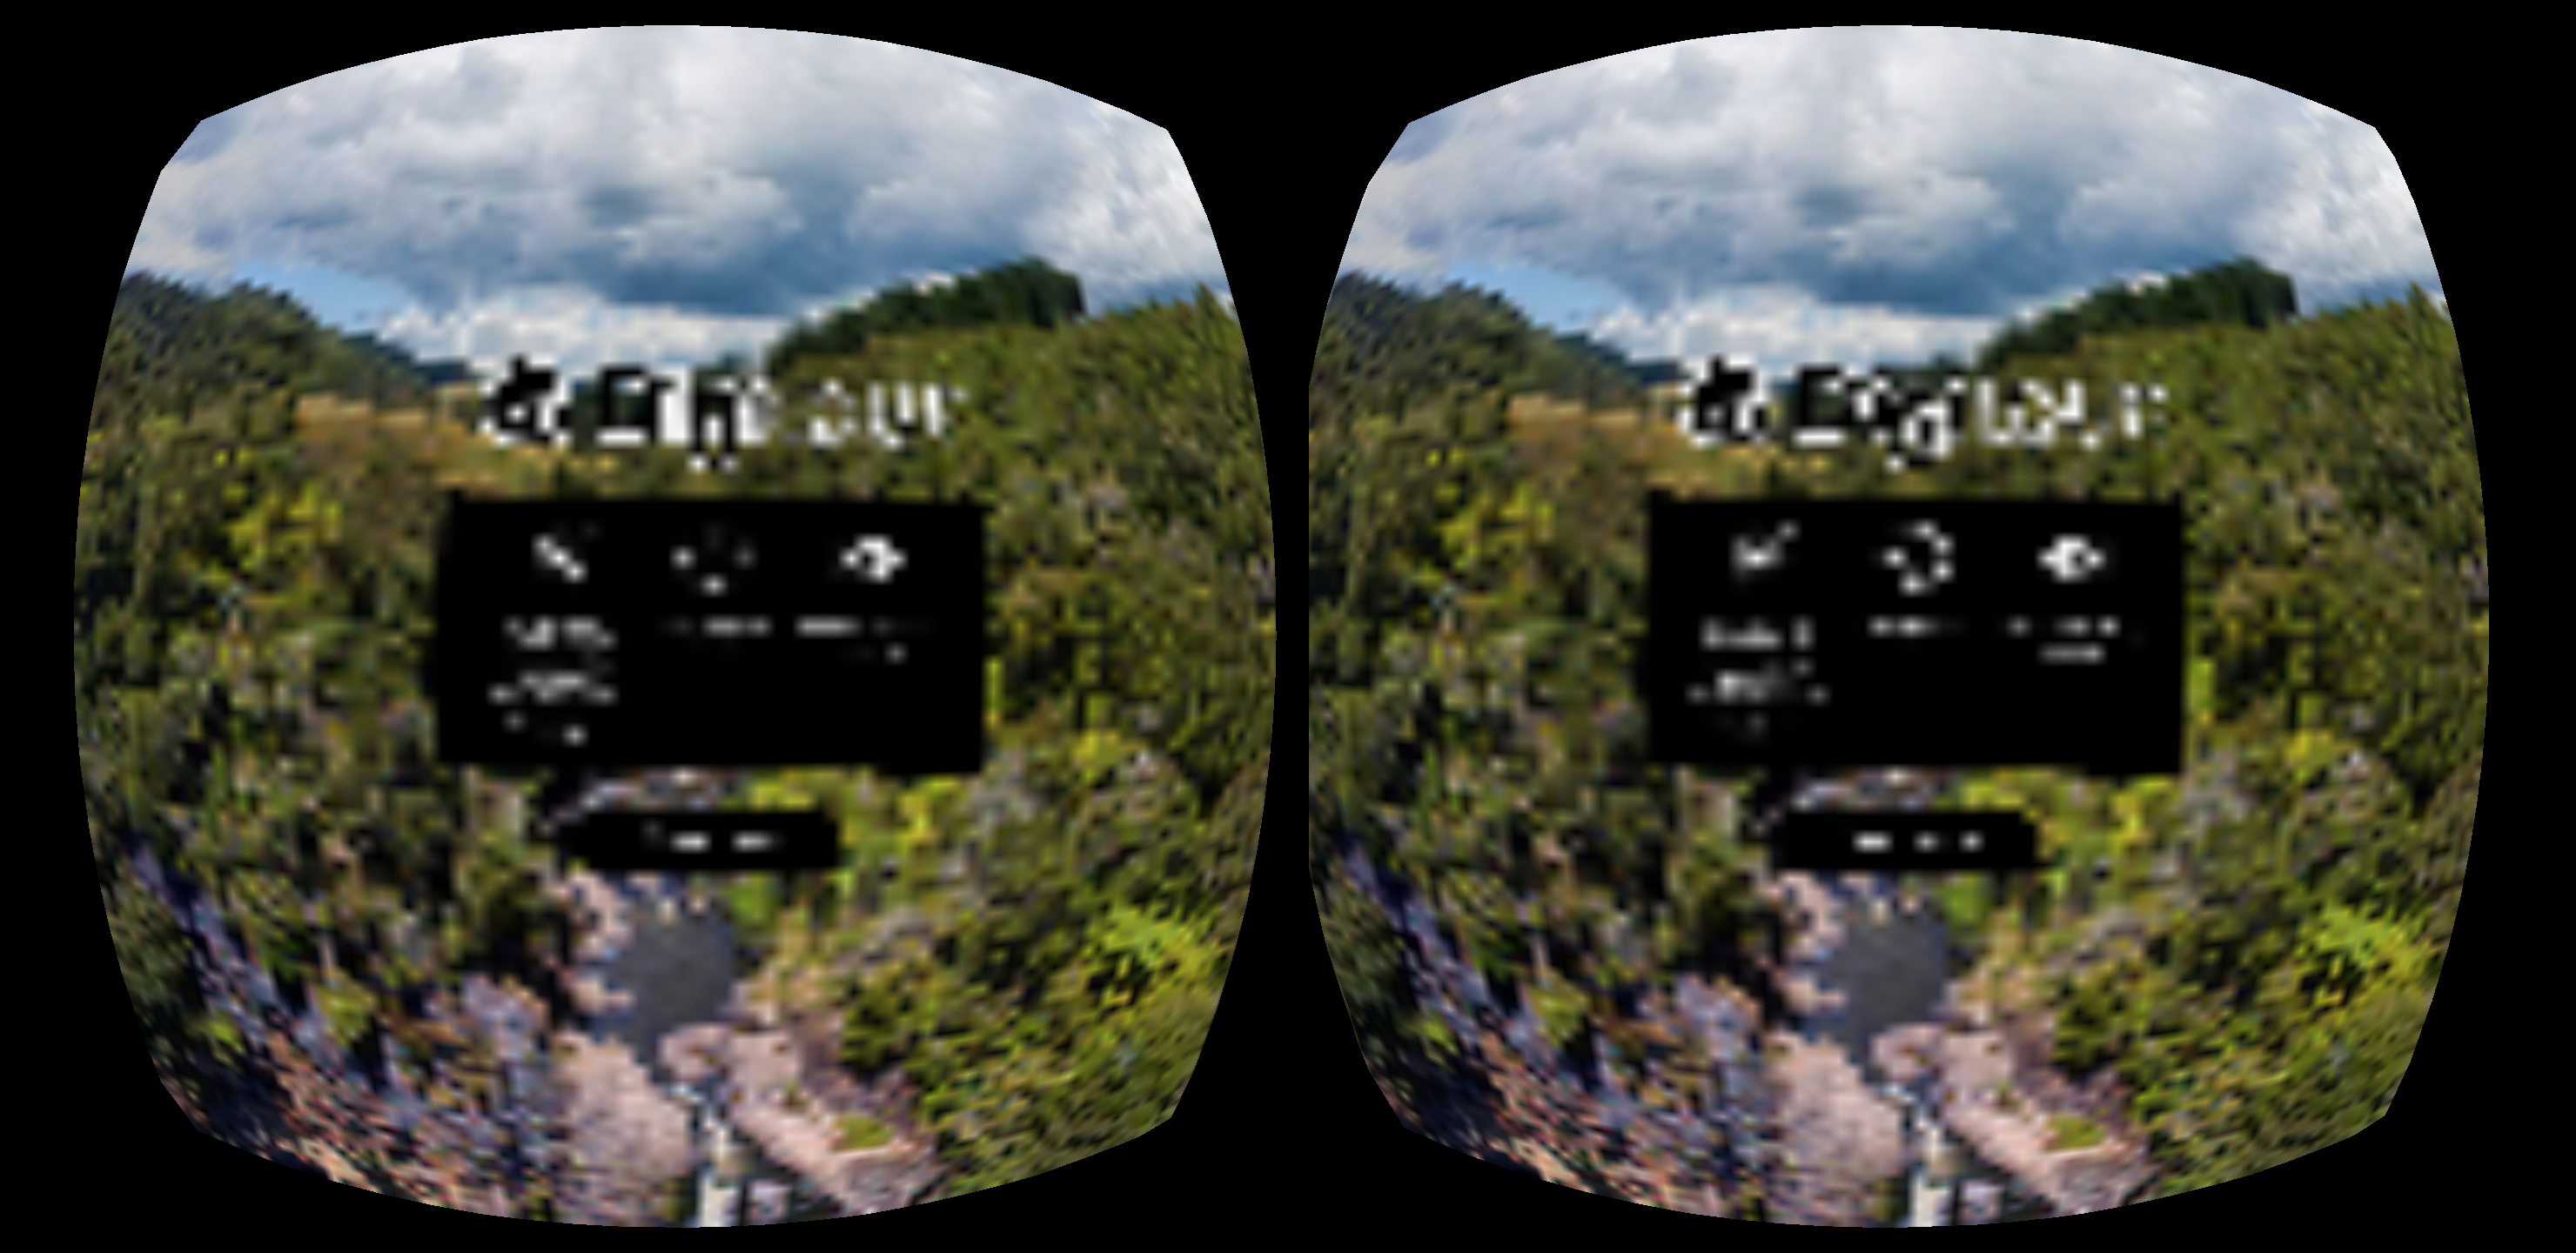 Display heavily pixelated image in VR Mode on Oculus Browser